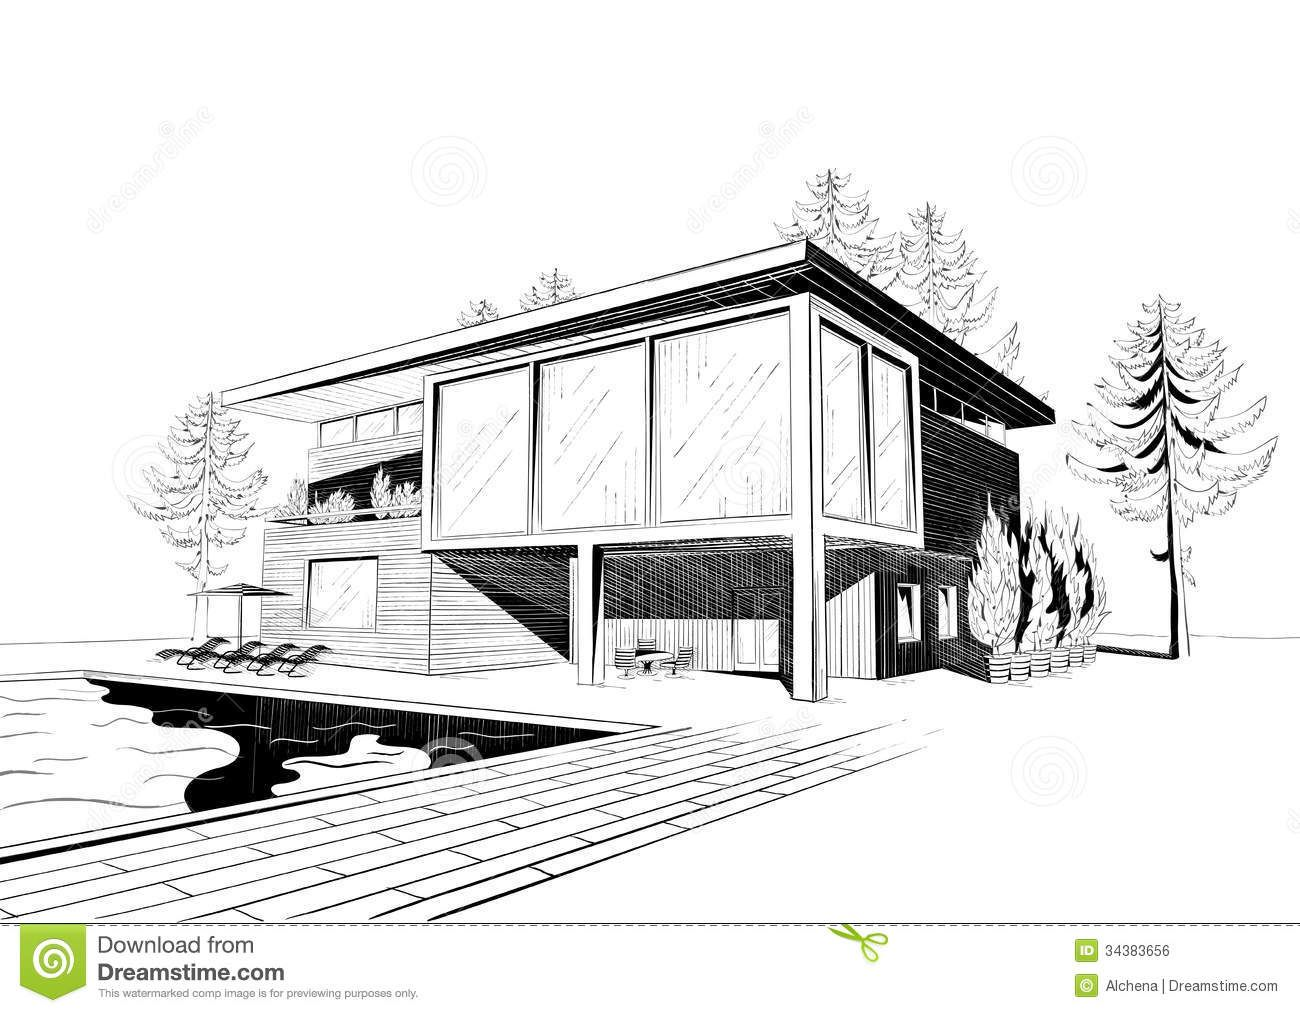 Architectural Drawings Of Modern Houses excellent modern home architecture sketches on home design with